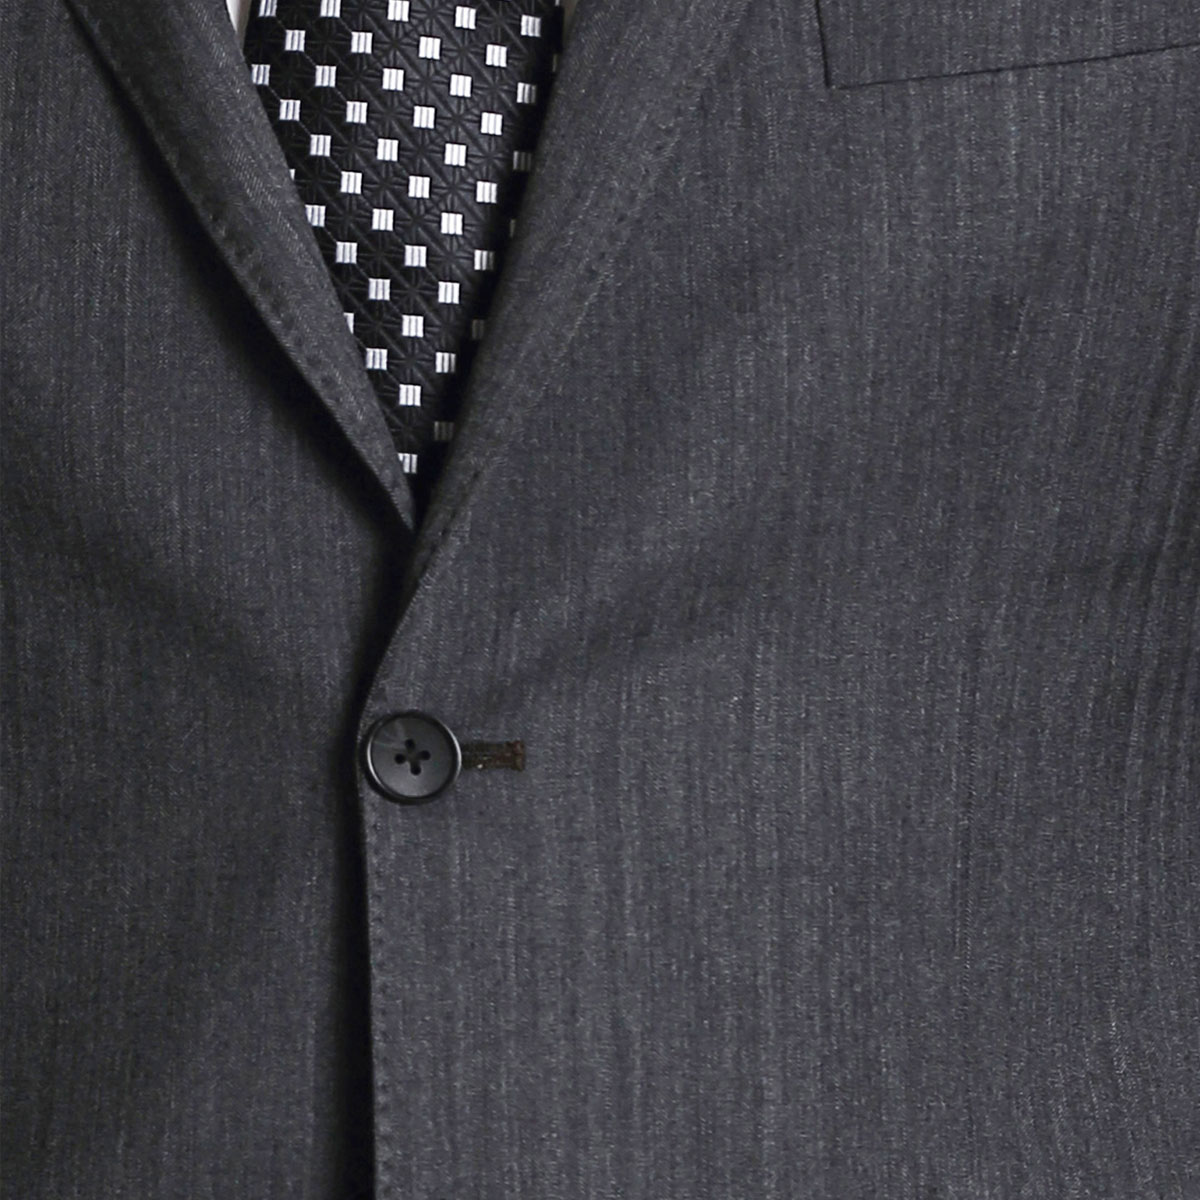 Million Dollar Grey Suit - Best Bespoke Suits. Premium Custom ...